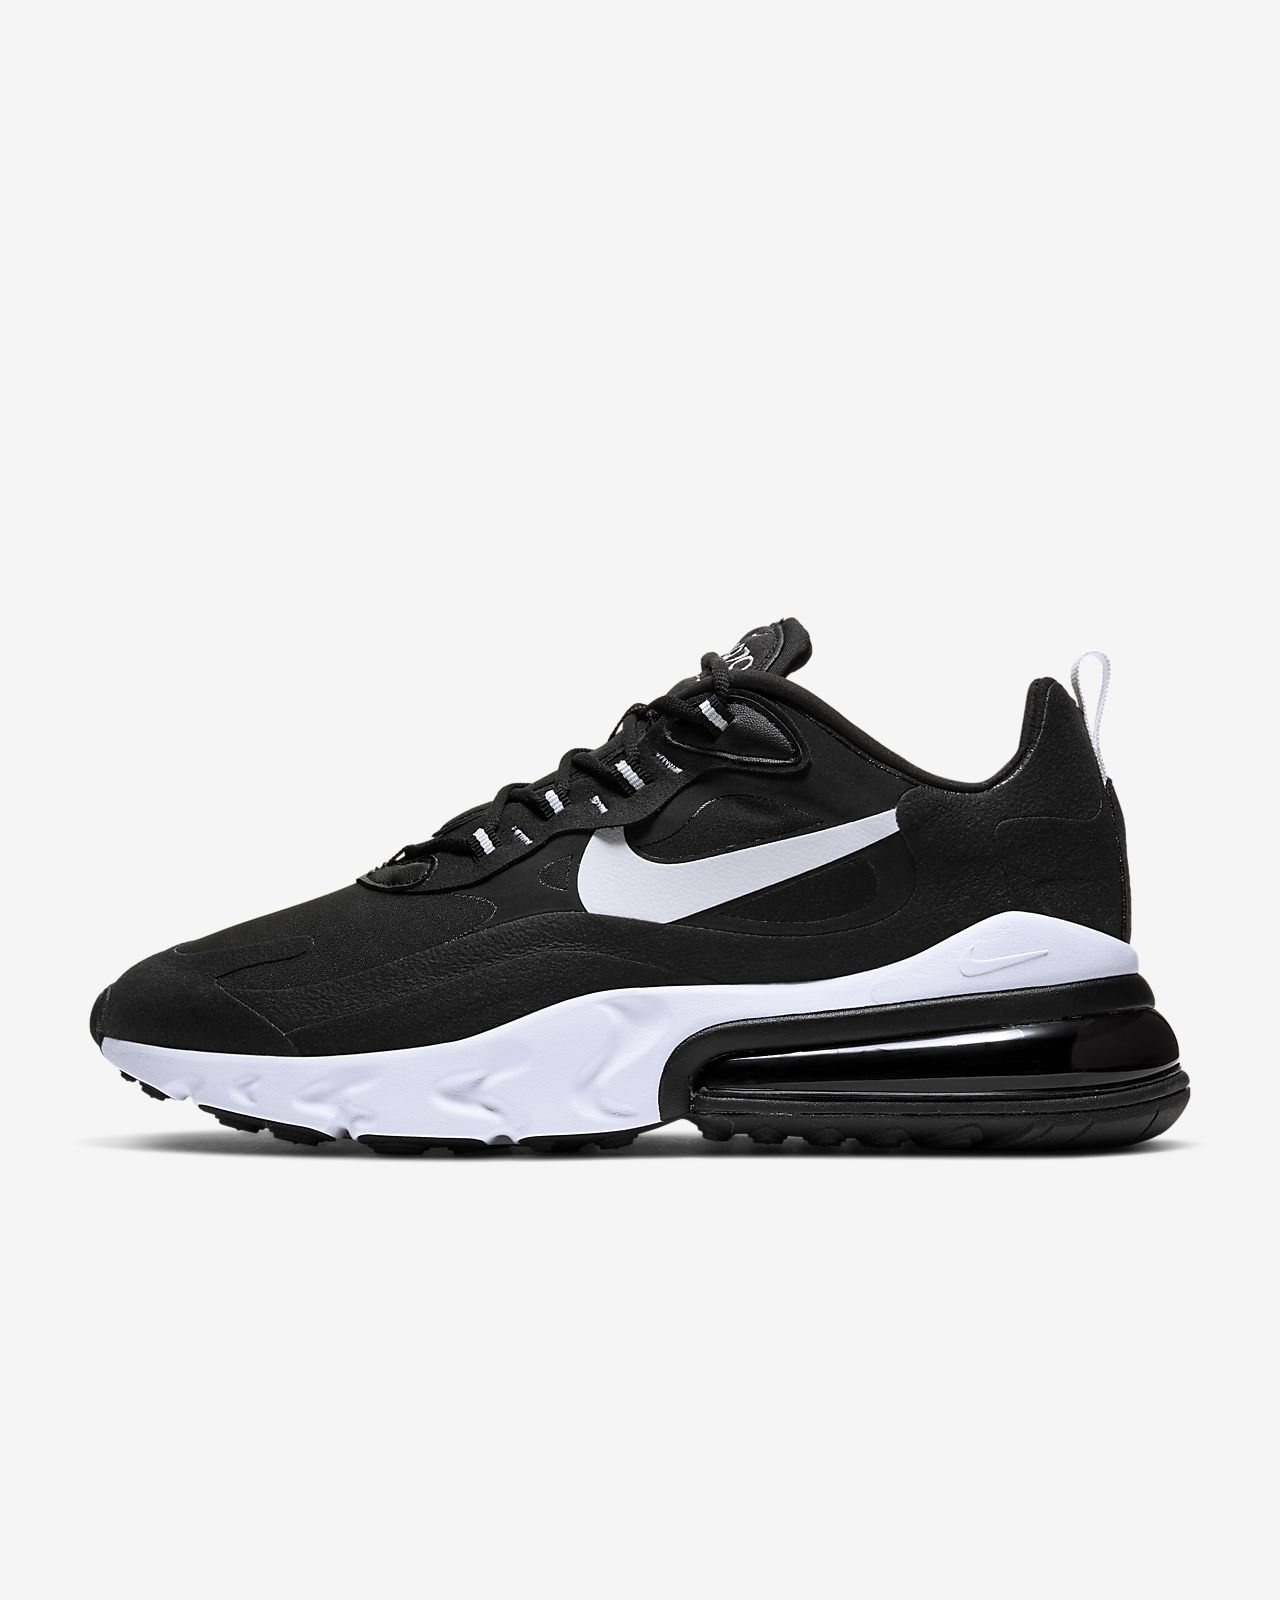 Nike Air Max Running Shoes : Buy Nike Sneakers & Shoes | Air